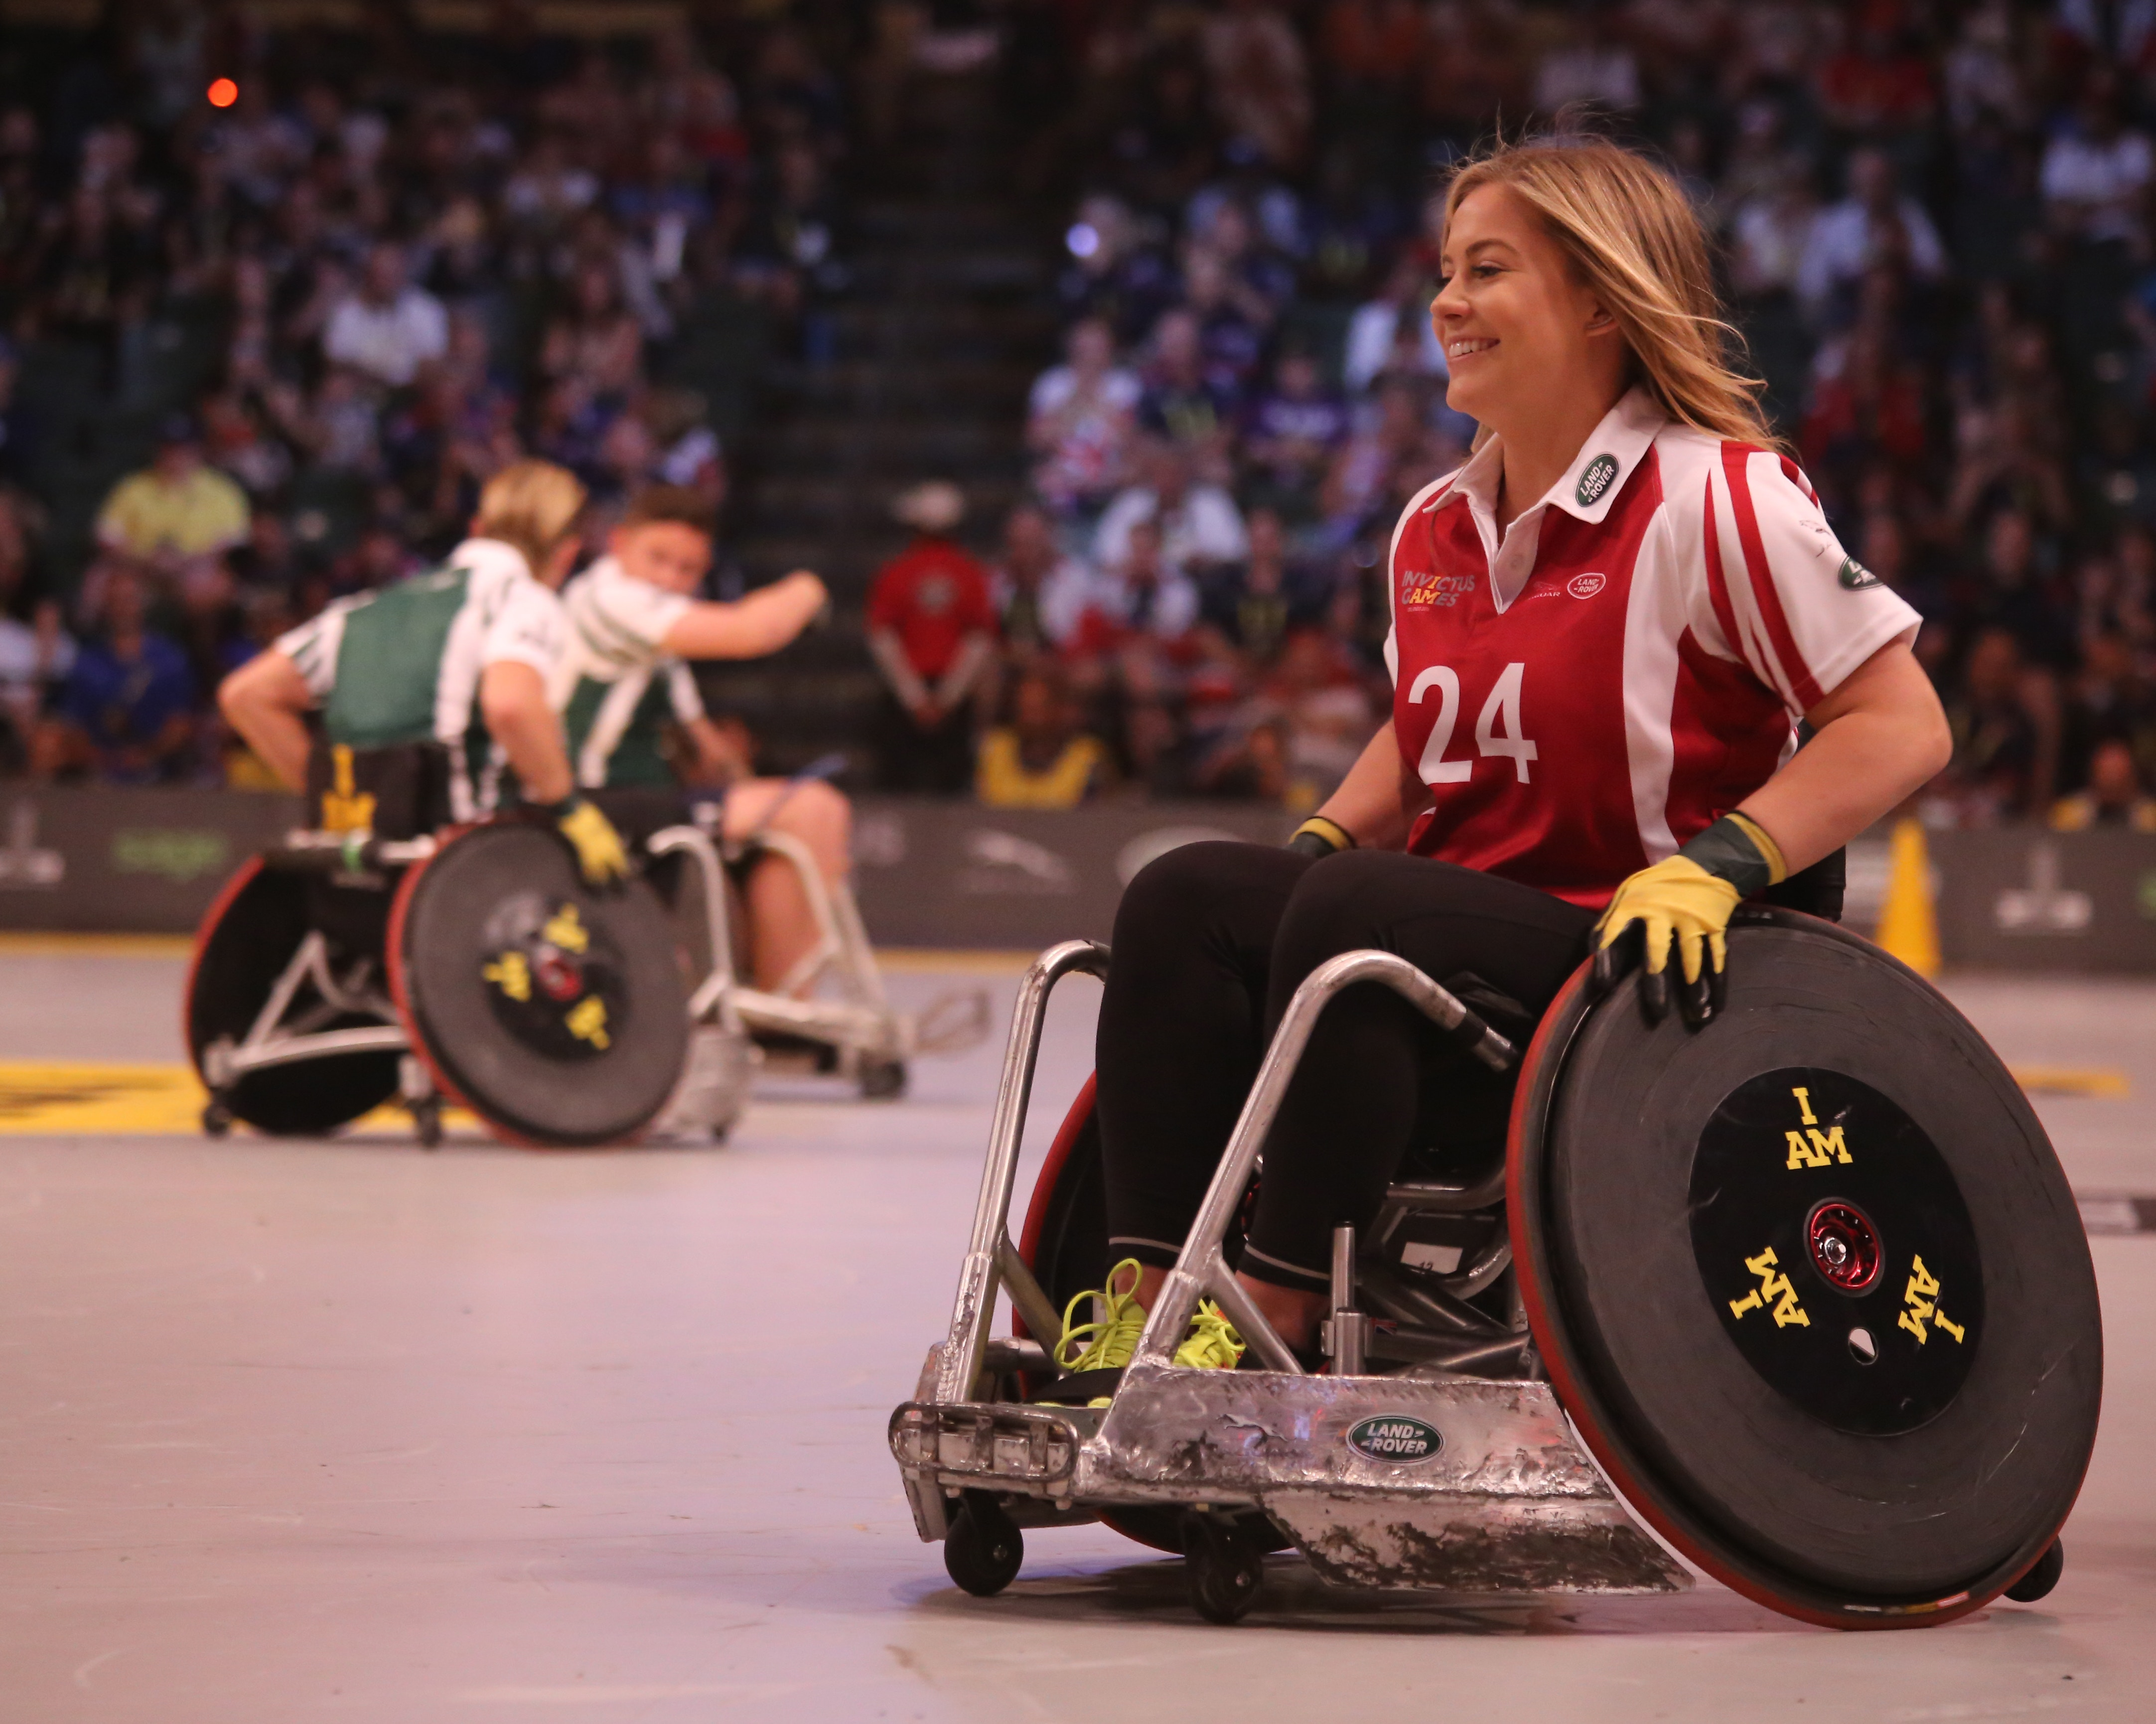 Image of an athlete competing in a wheelchair